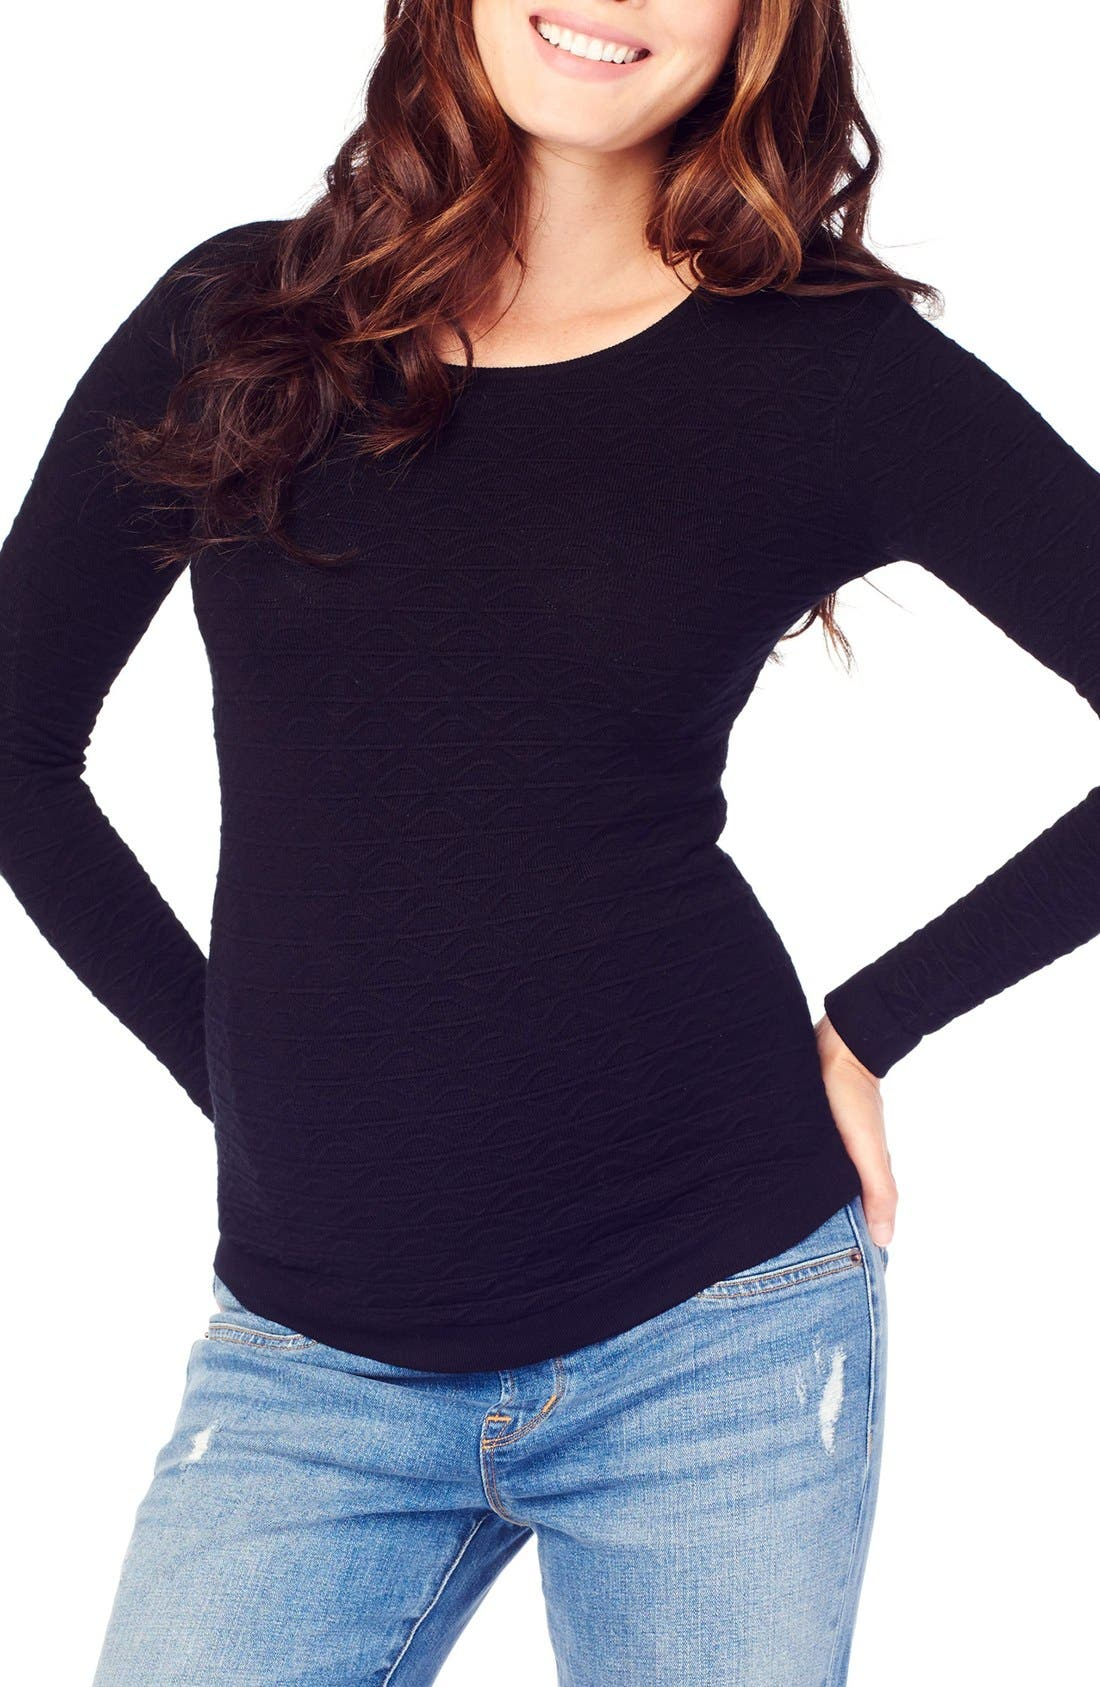 Ingrid & Isabel Textured Knit Maternity Sweater,                         Main,                         color, Jet Black